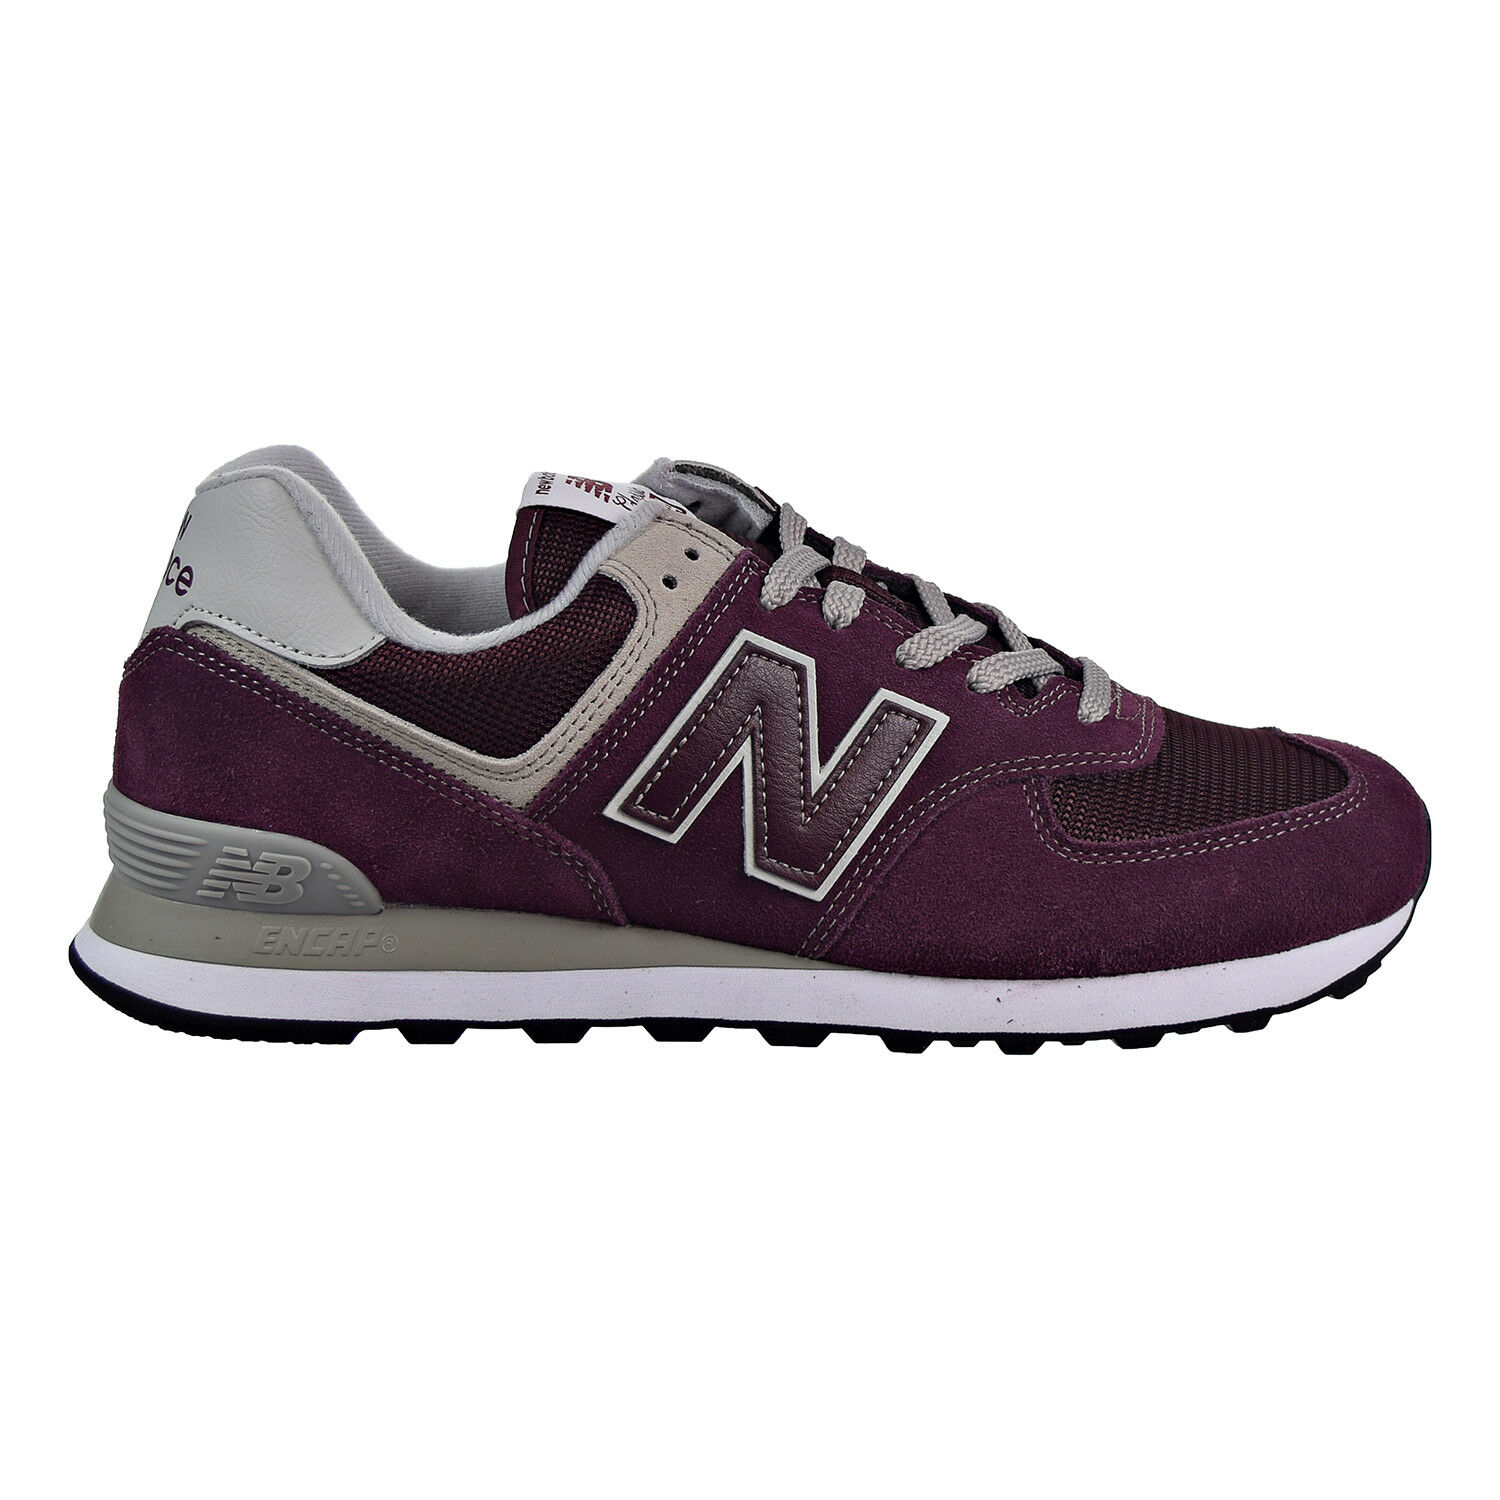 New Balance 574 Men's shoes Burgundy ML574-EGB